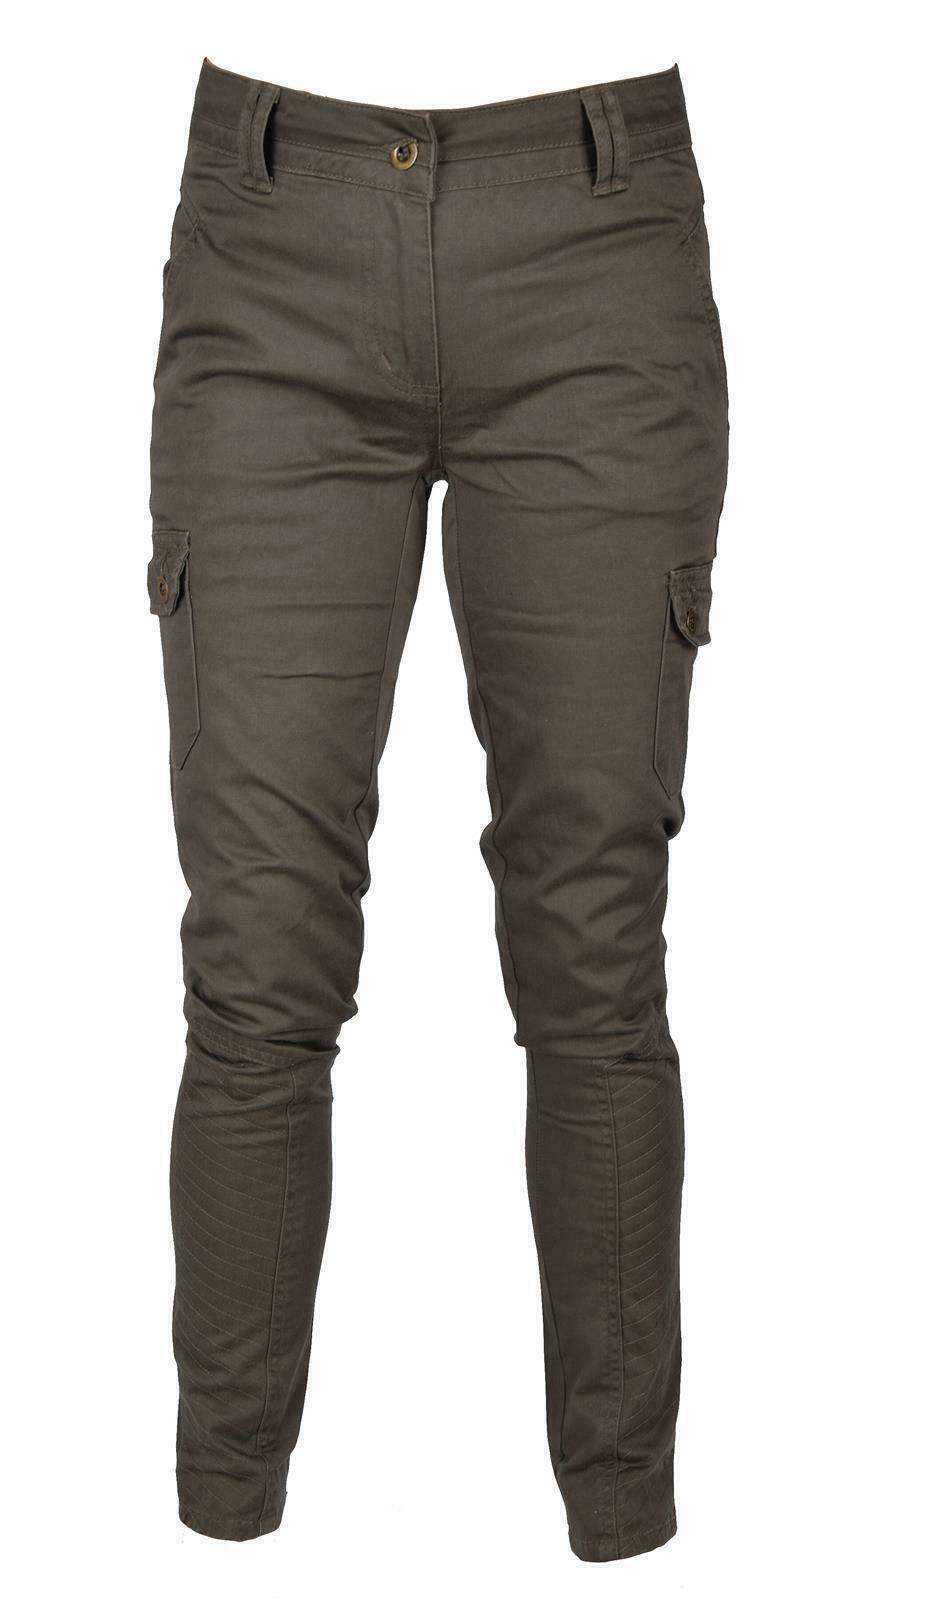 iwea damen cargo hose lang jeans hose dark khaki iw050 eur 13 98 picclick de. Black Bedroom Furniture Sets. Home Design Ideas